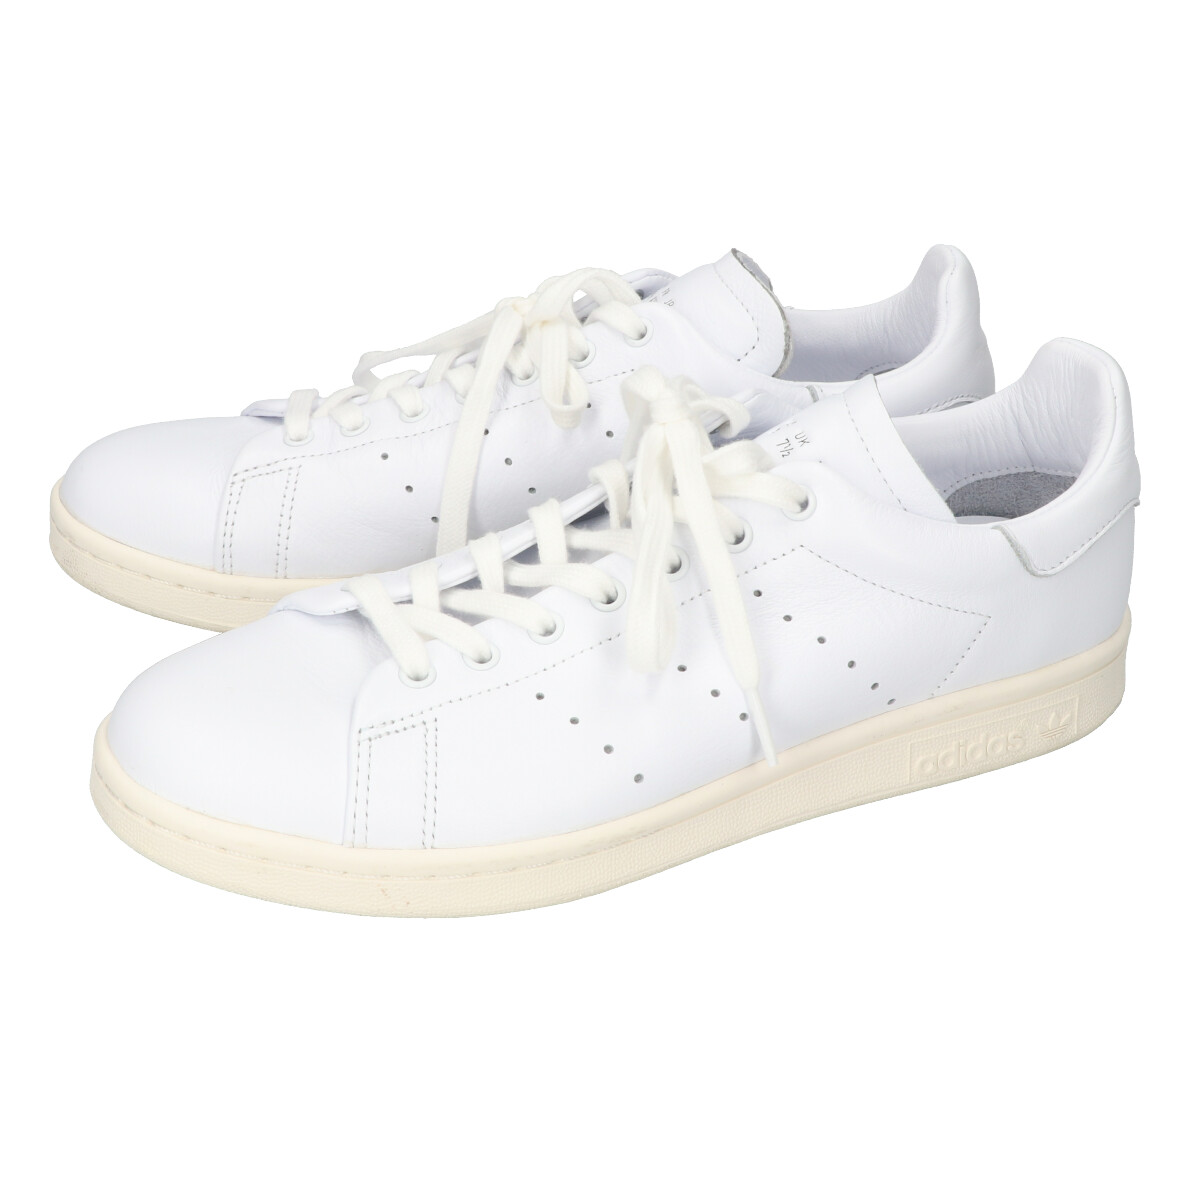 best service d91ca 5f63a adidas Adidas EE5790 STAN SMITH RECON Stan Sumi pickpocket Conroe cut  sneakers shoes 26 white men